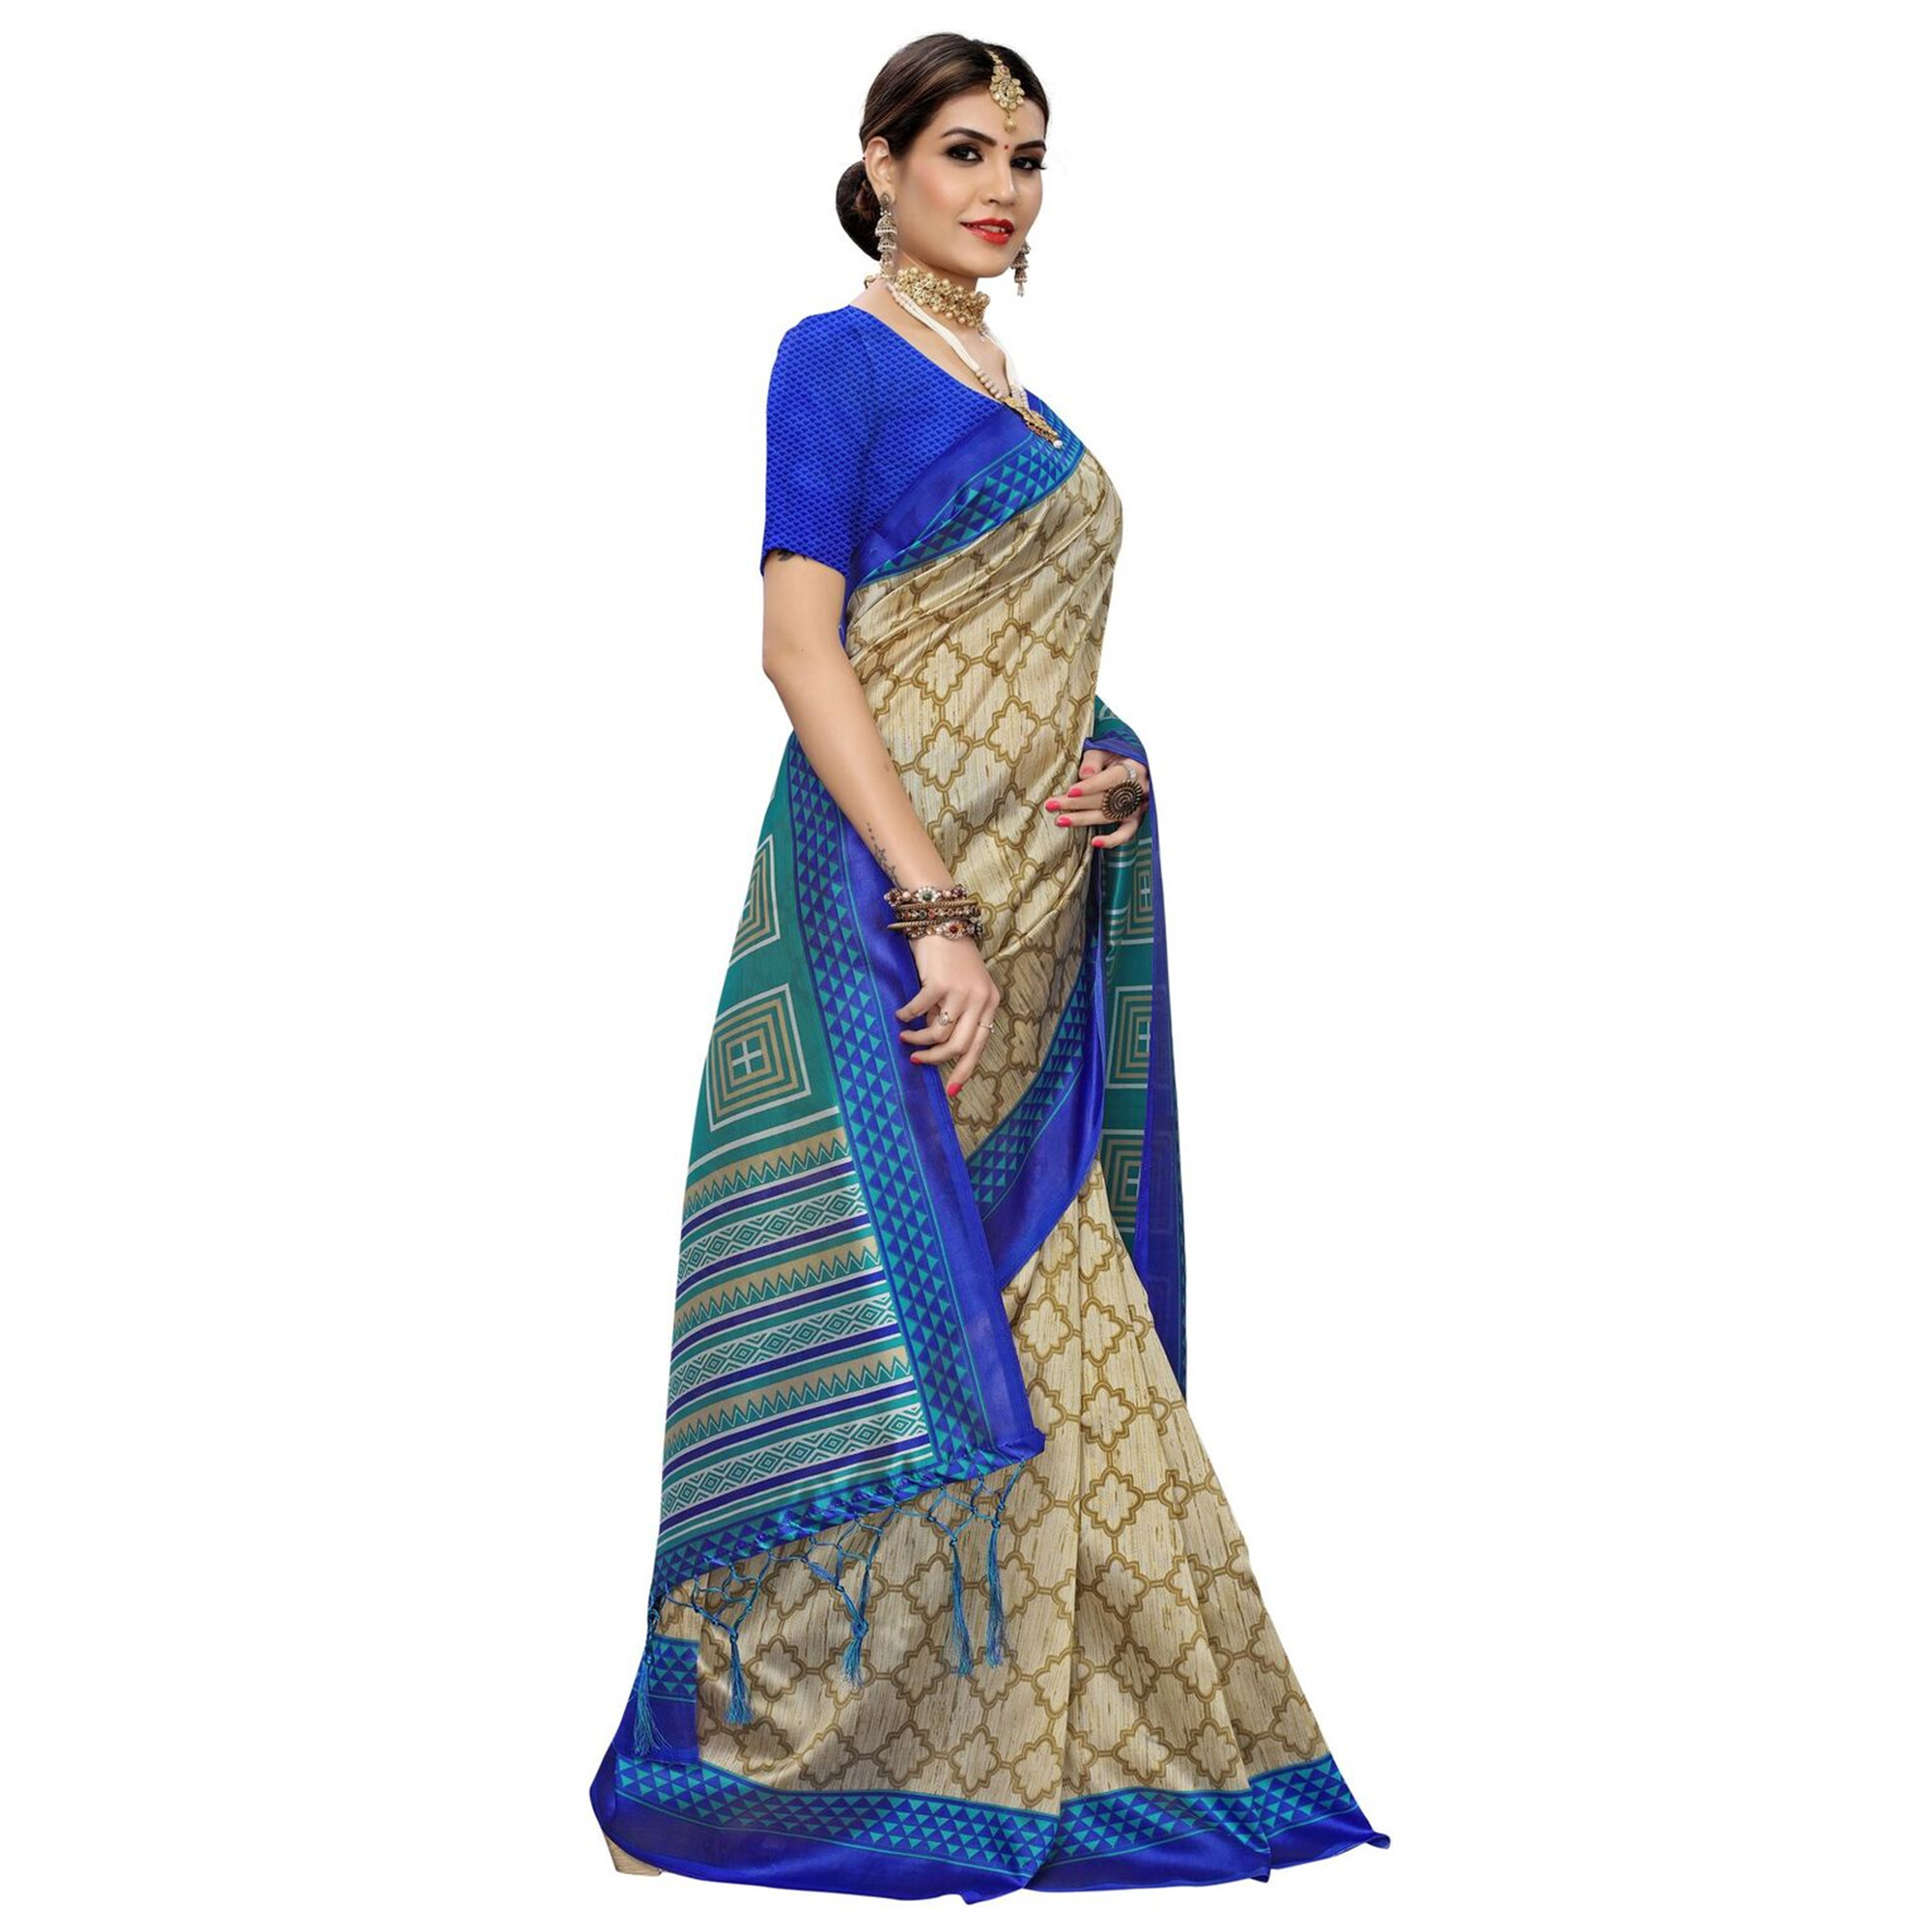 Hypnotic Beige-Rama Green Colored Casual Printed Art Silk Saree